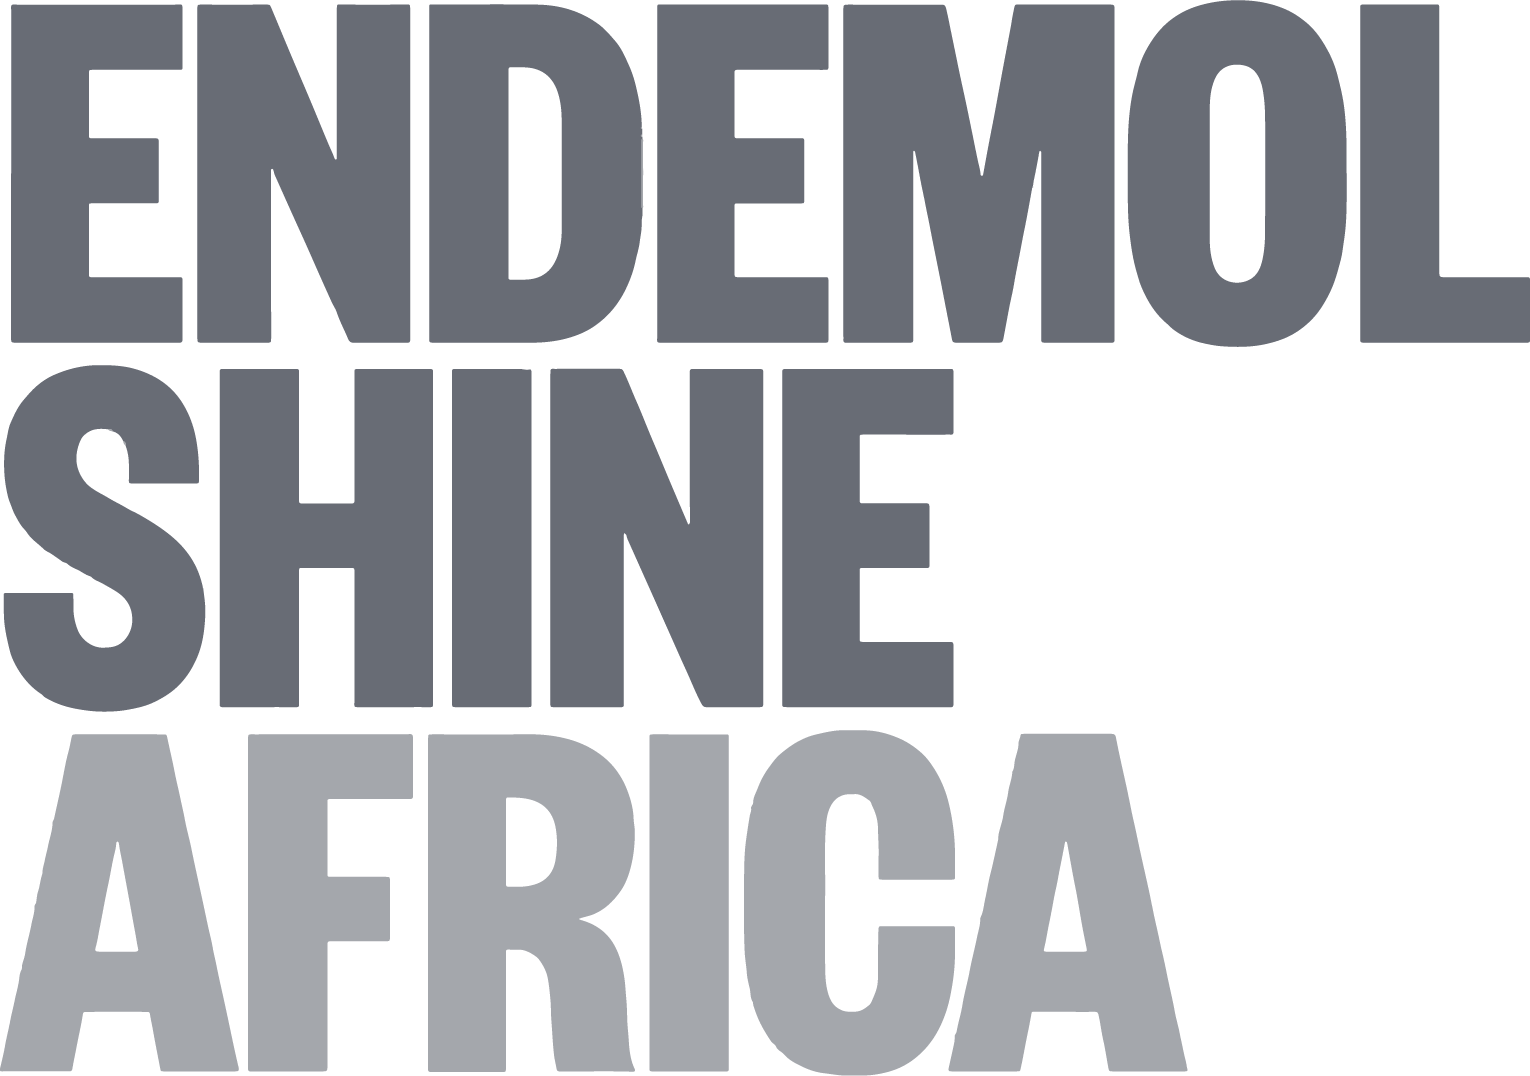 EndemolShineAfricaVector.png